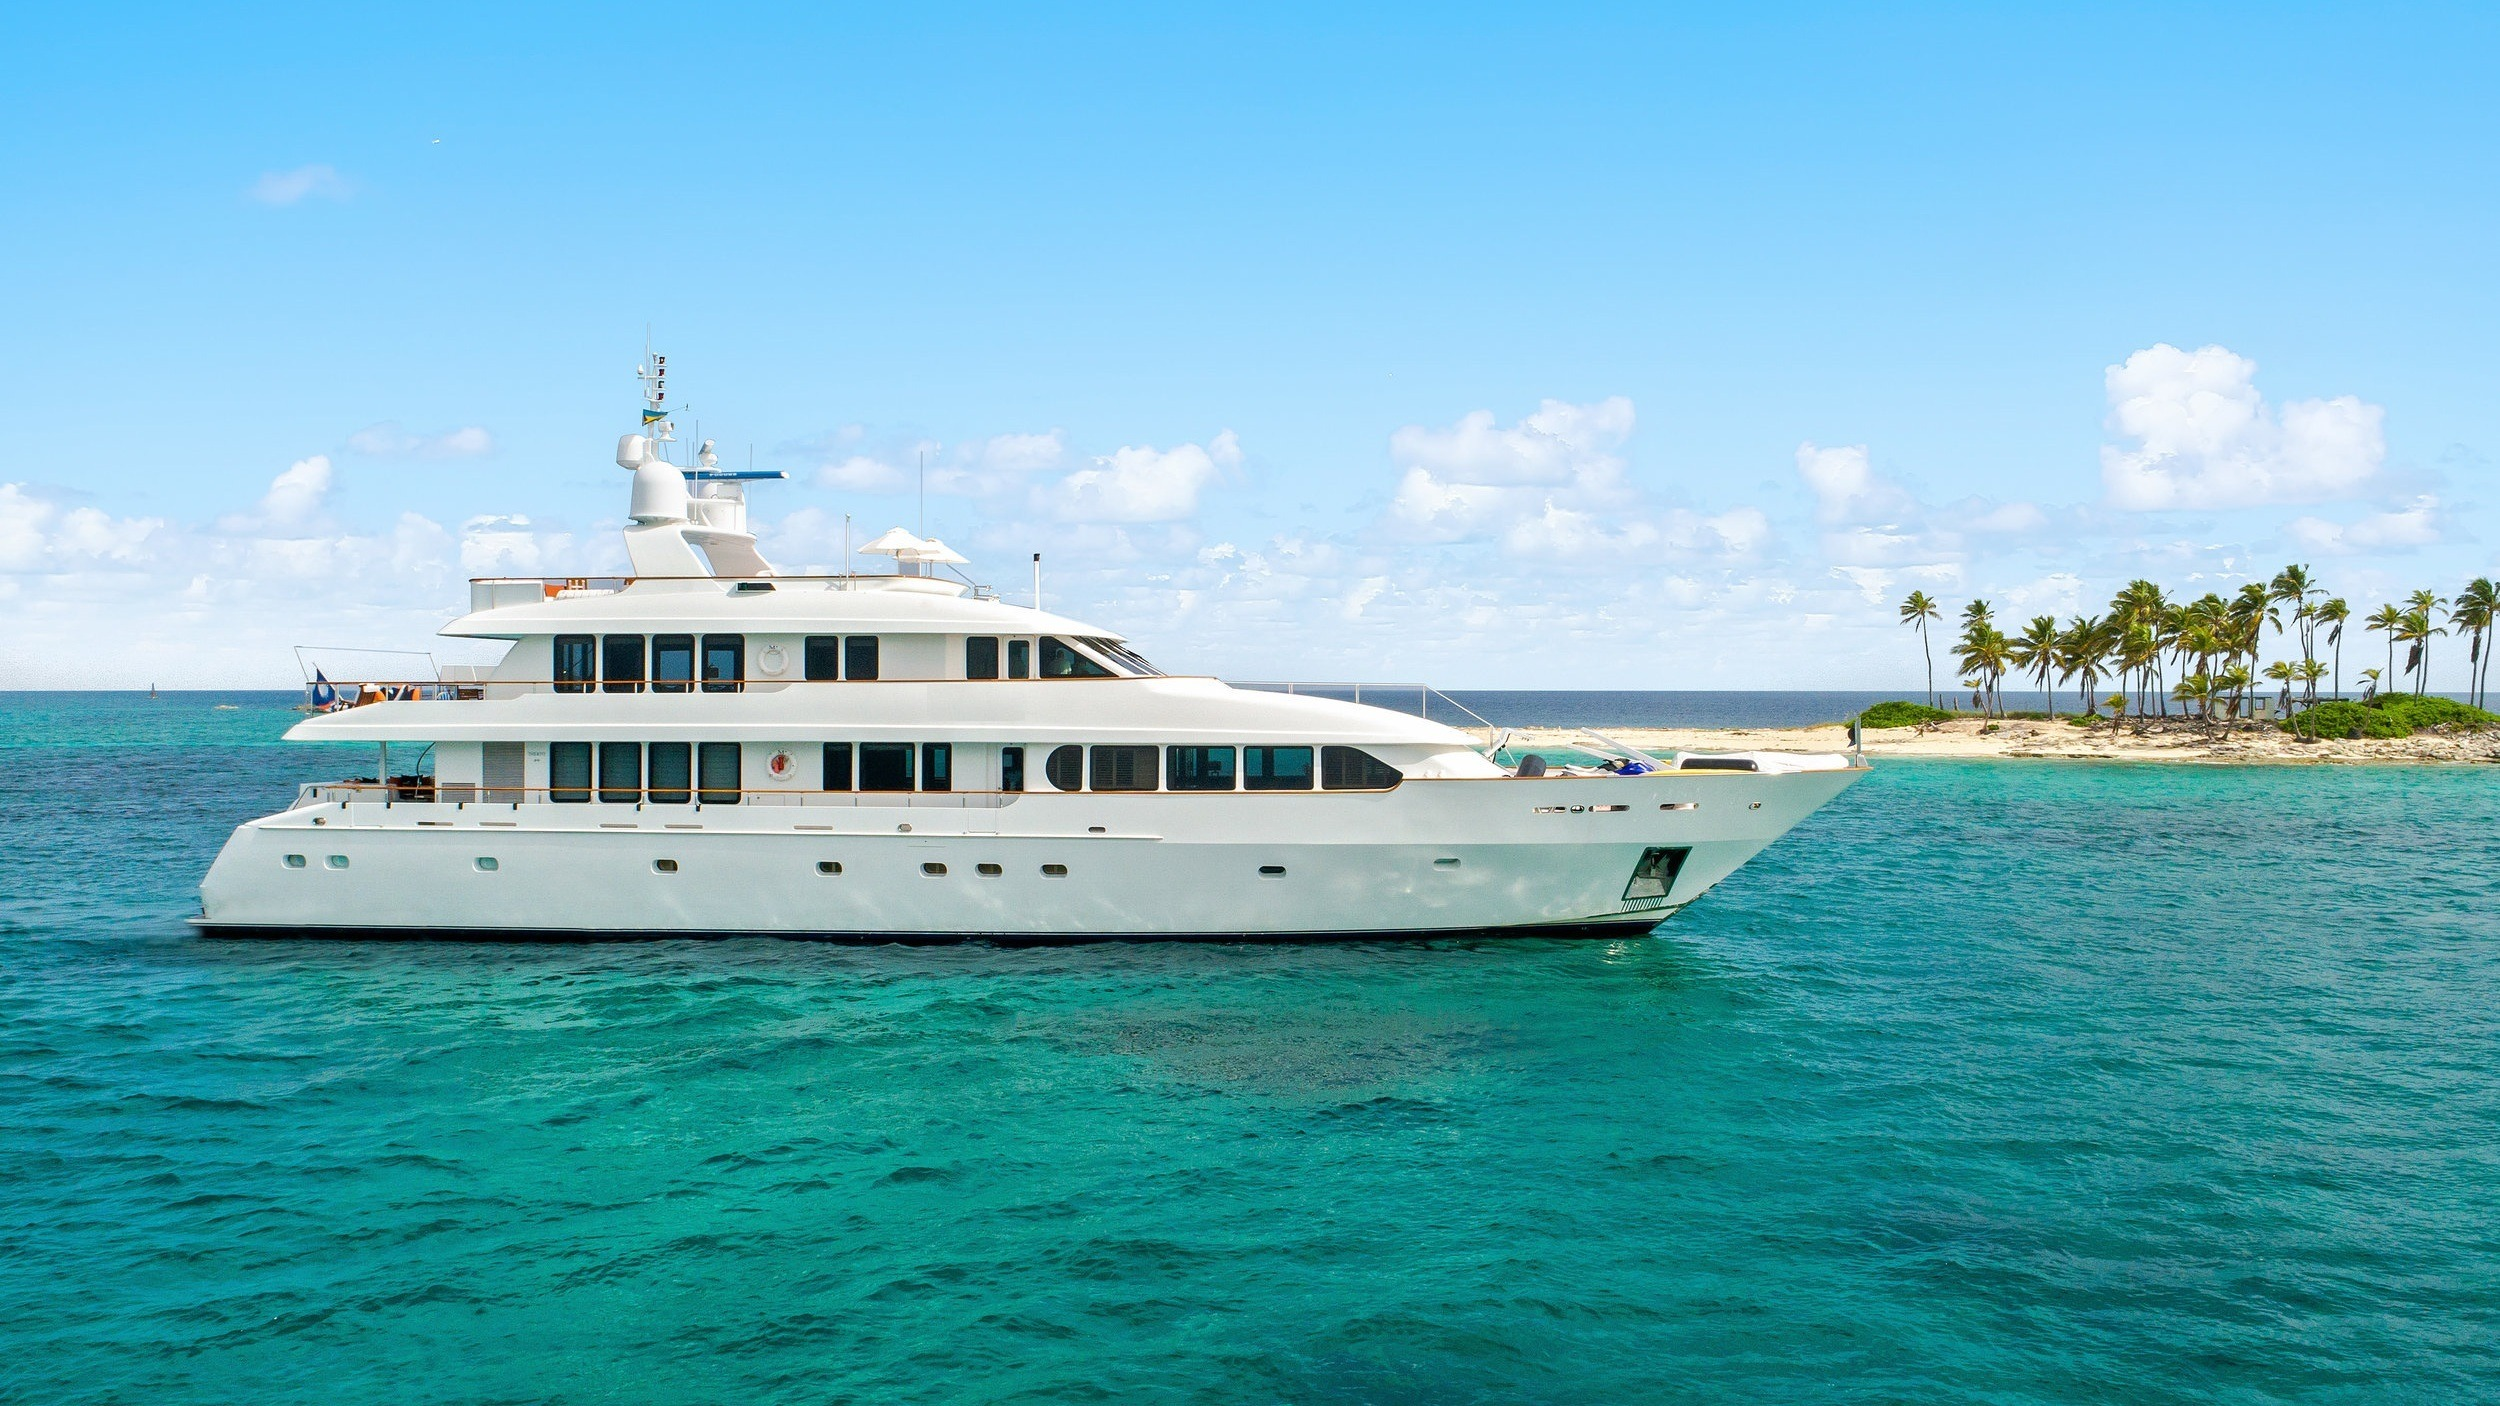 comfortable and capable motor yacht with a cruising speed of 10 knots